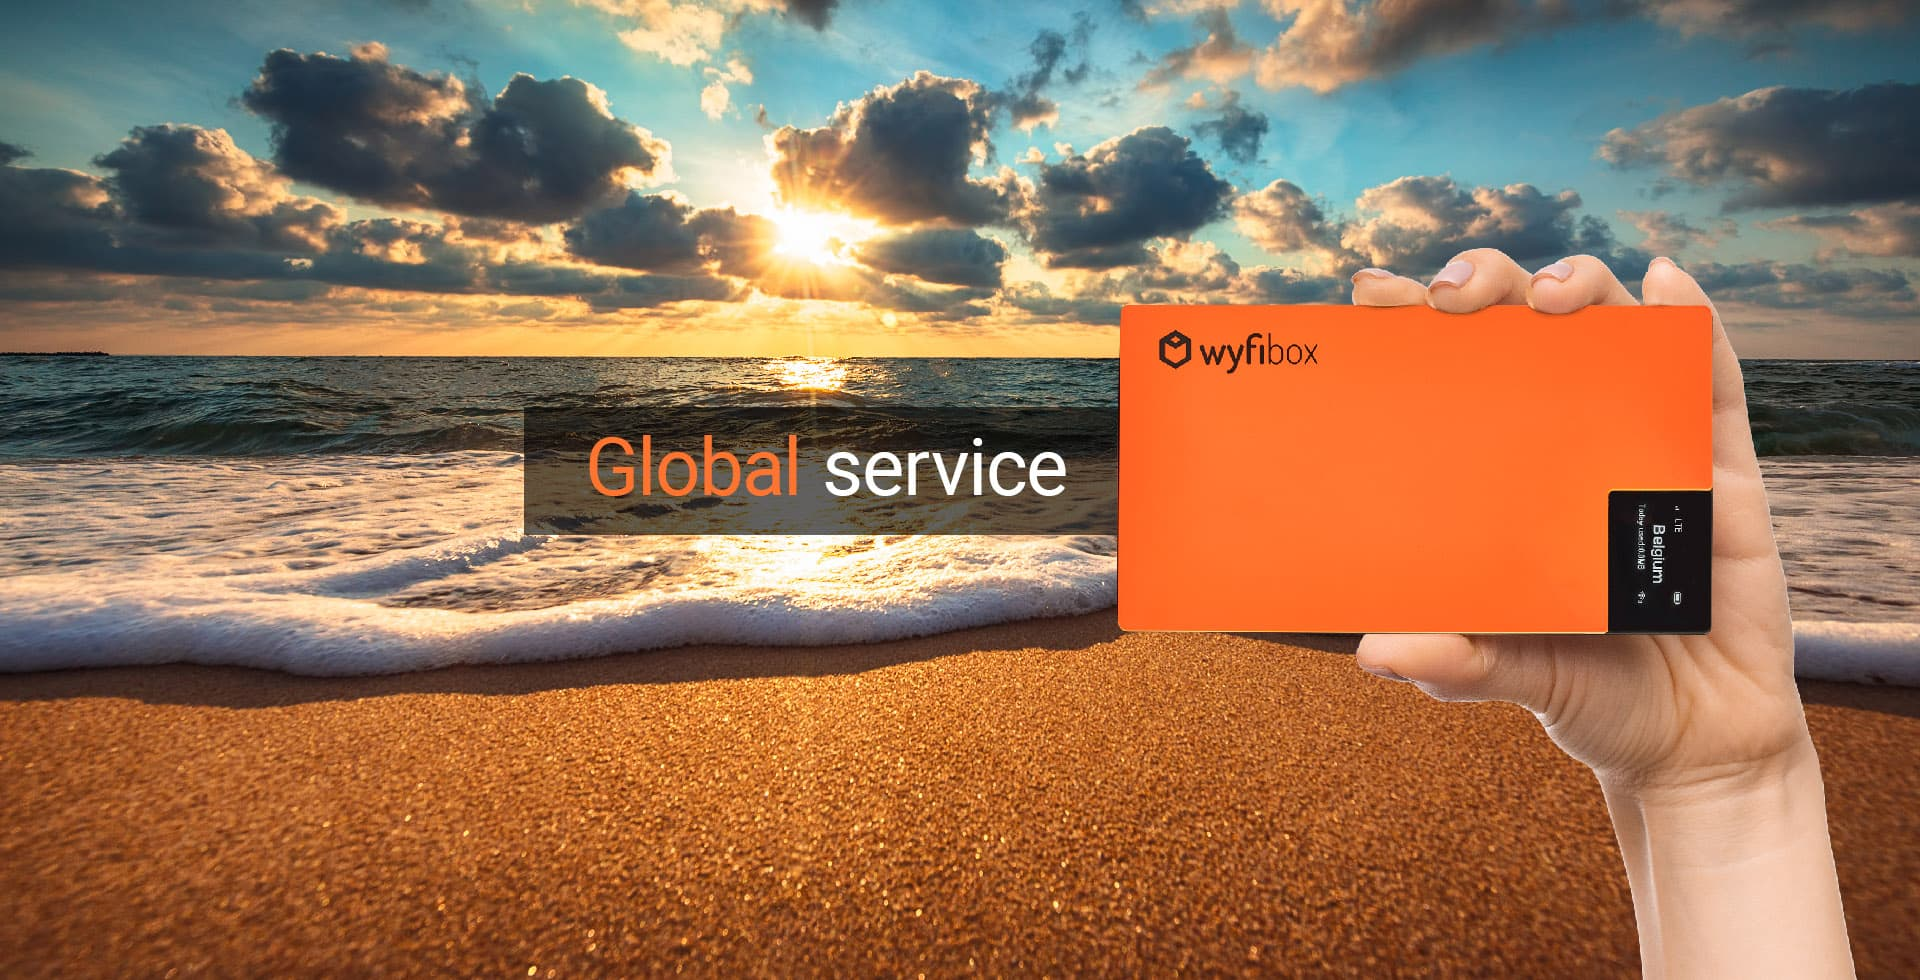 Wyfibox works in over 150 destinations